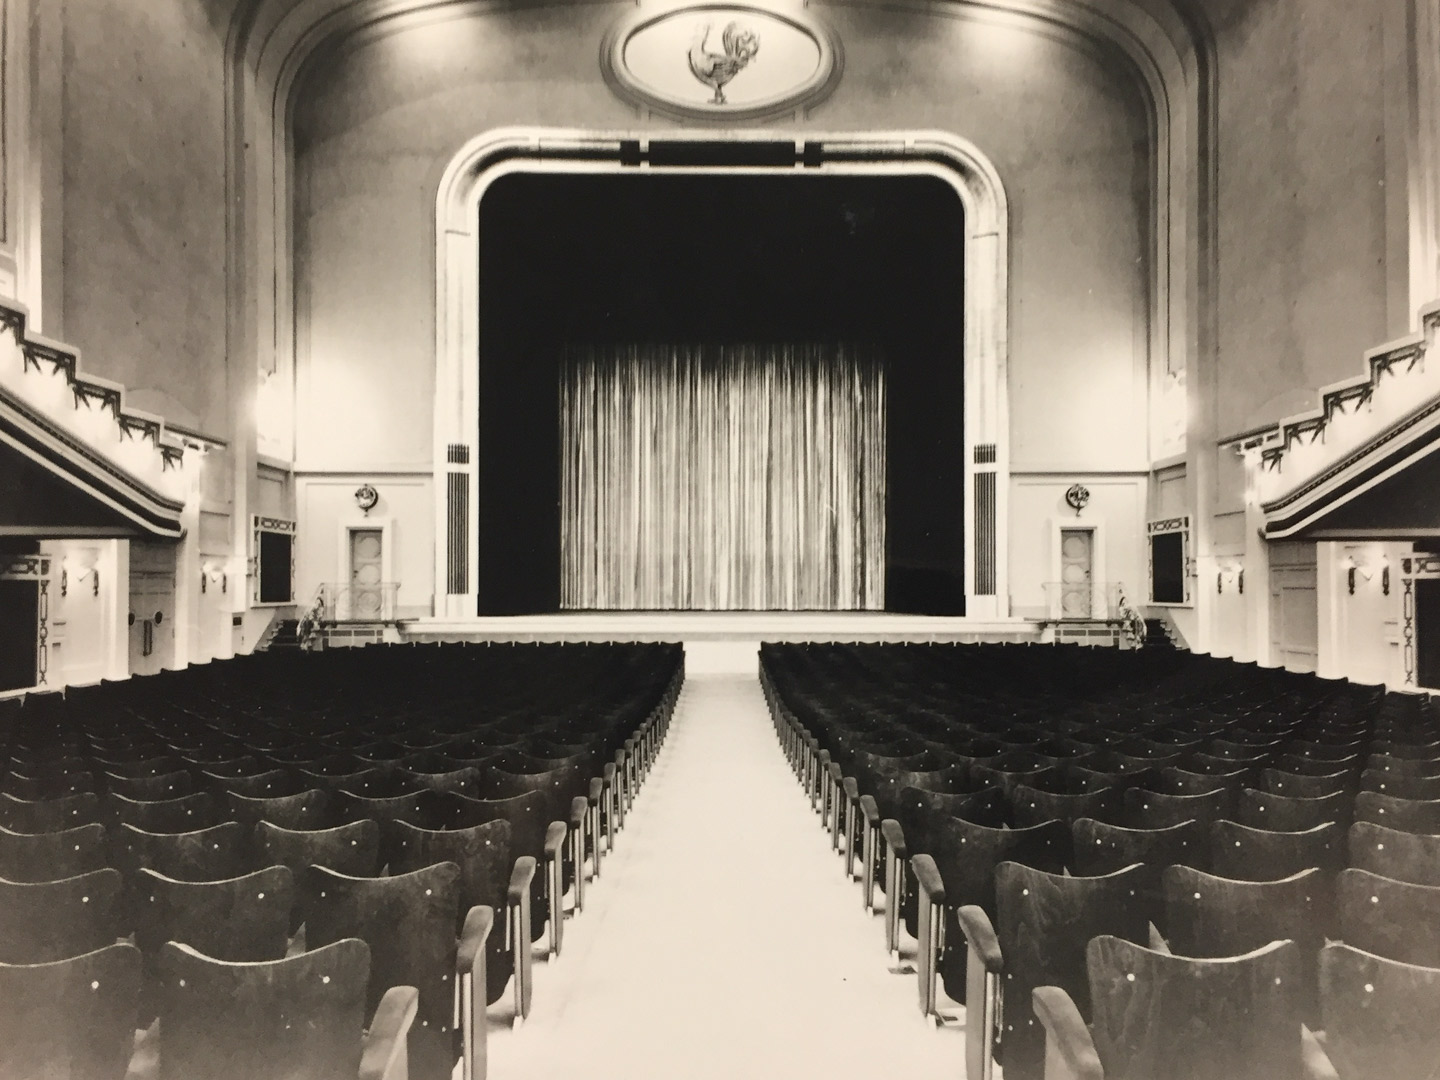 The old theatre hall of Marivaux Cinema